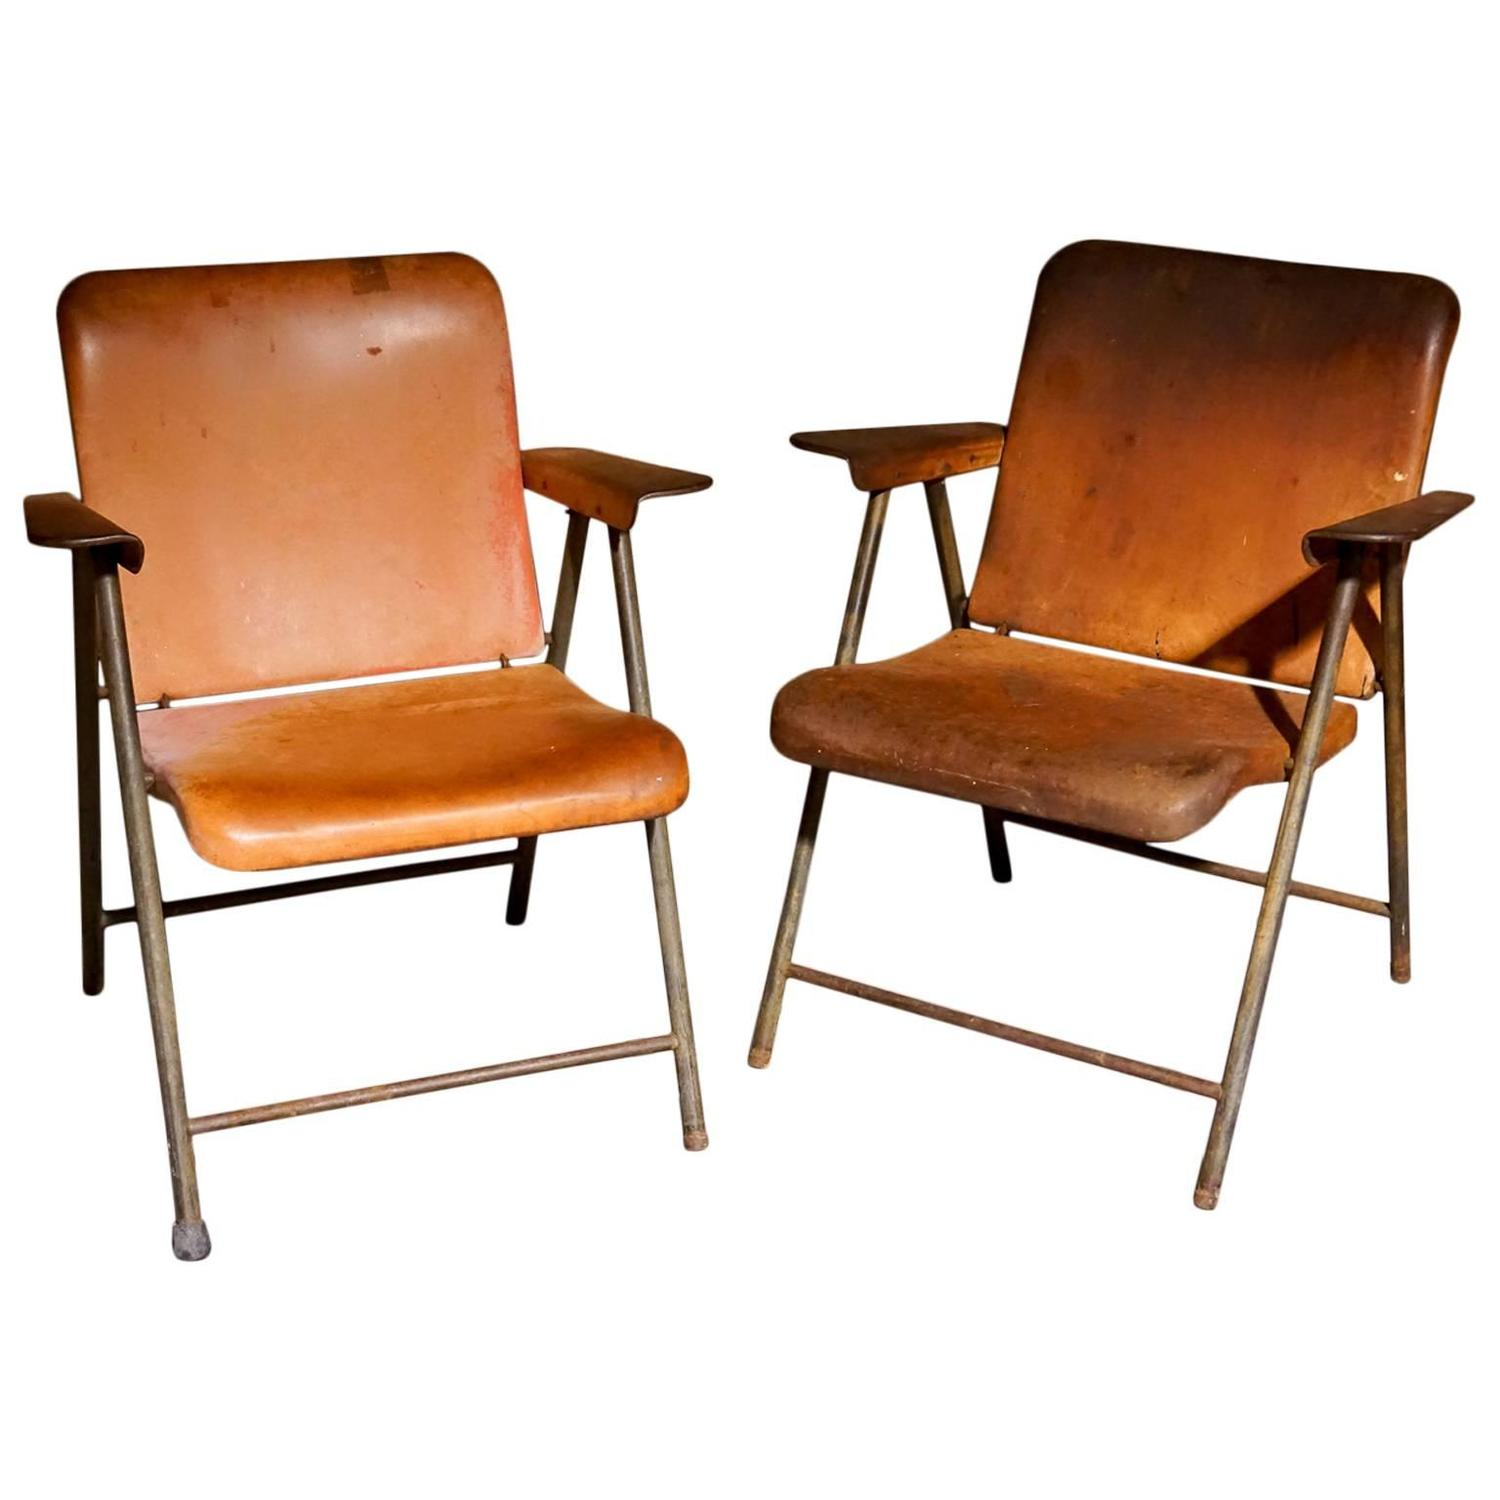 Pair of Mid Century Garden Chairs For Sale at 1stdibs